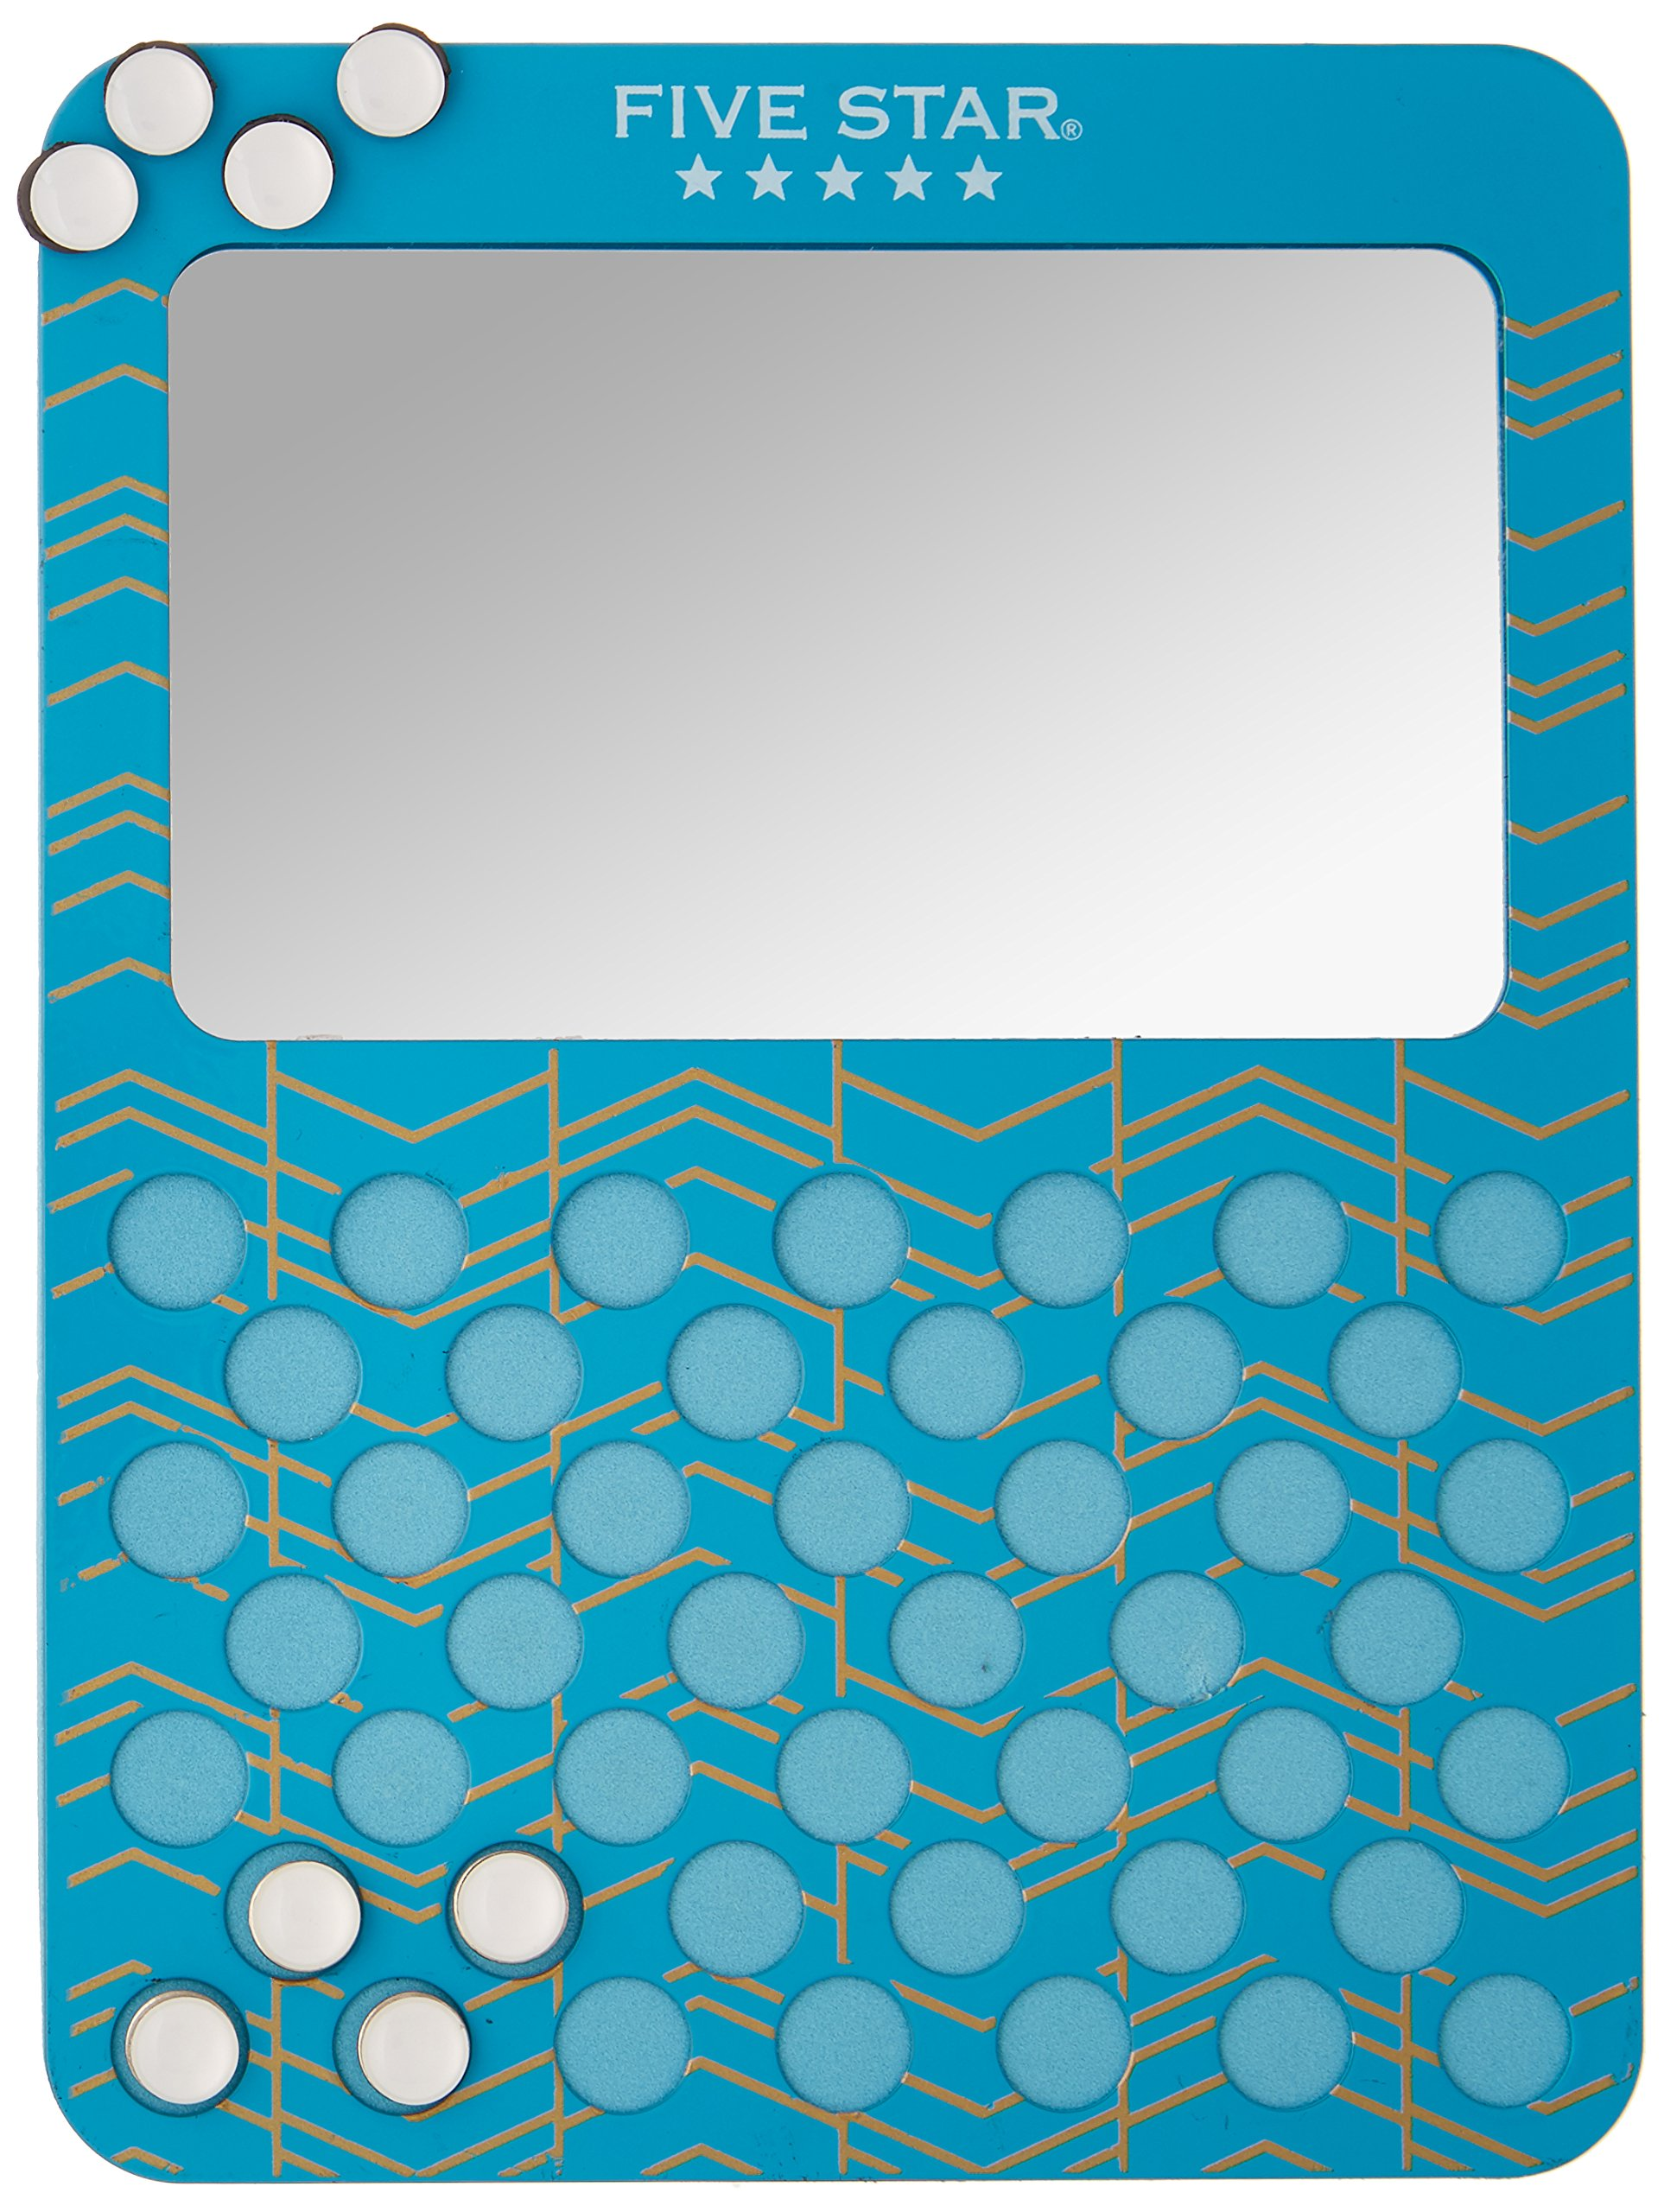 Five Star Locker Accessories, Magnetic Mirror with Push Pin Board, Teal Chevron (38988)